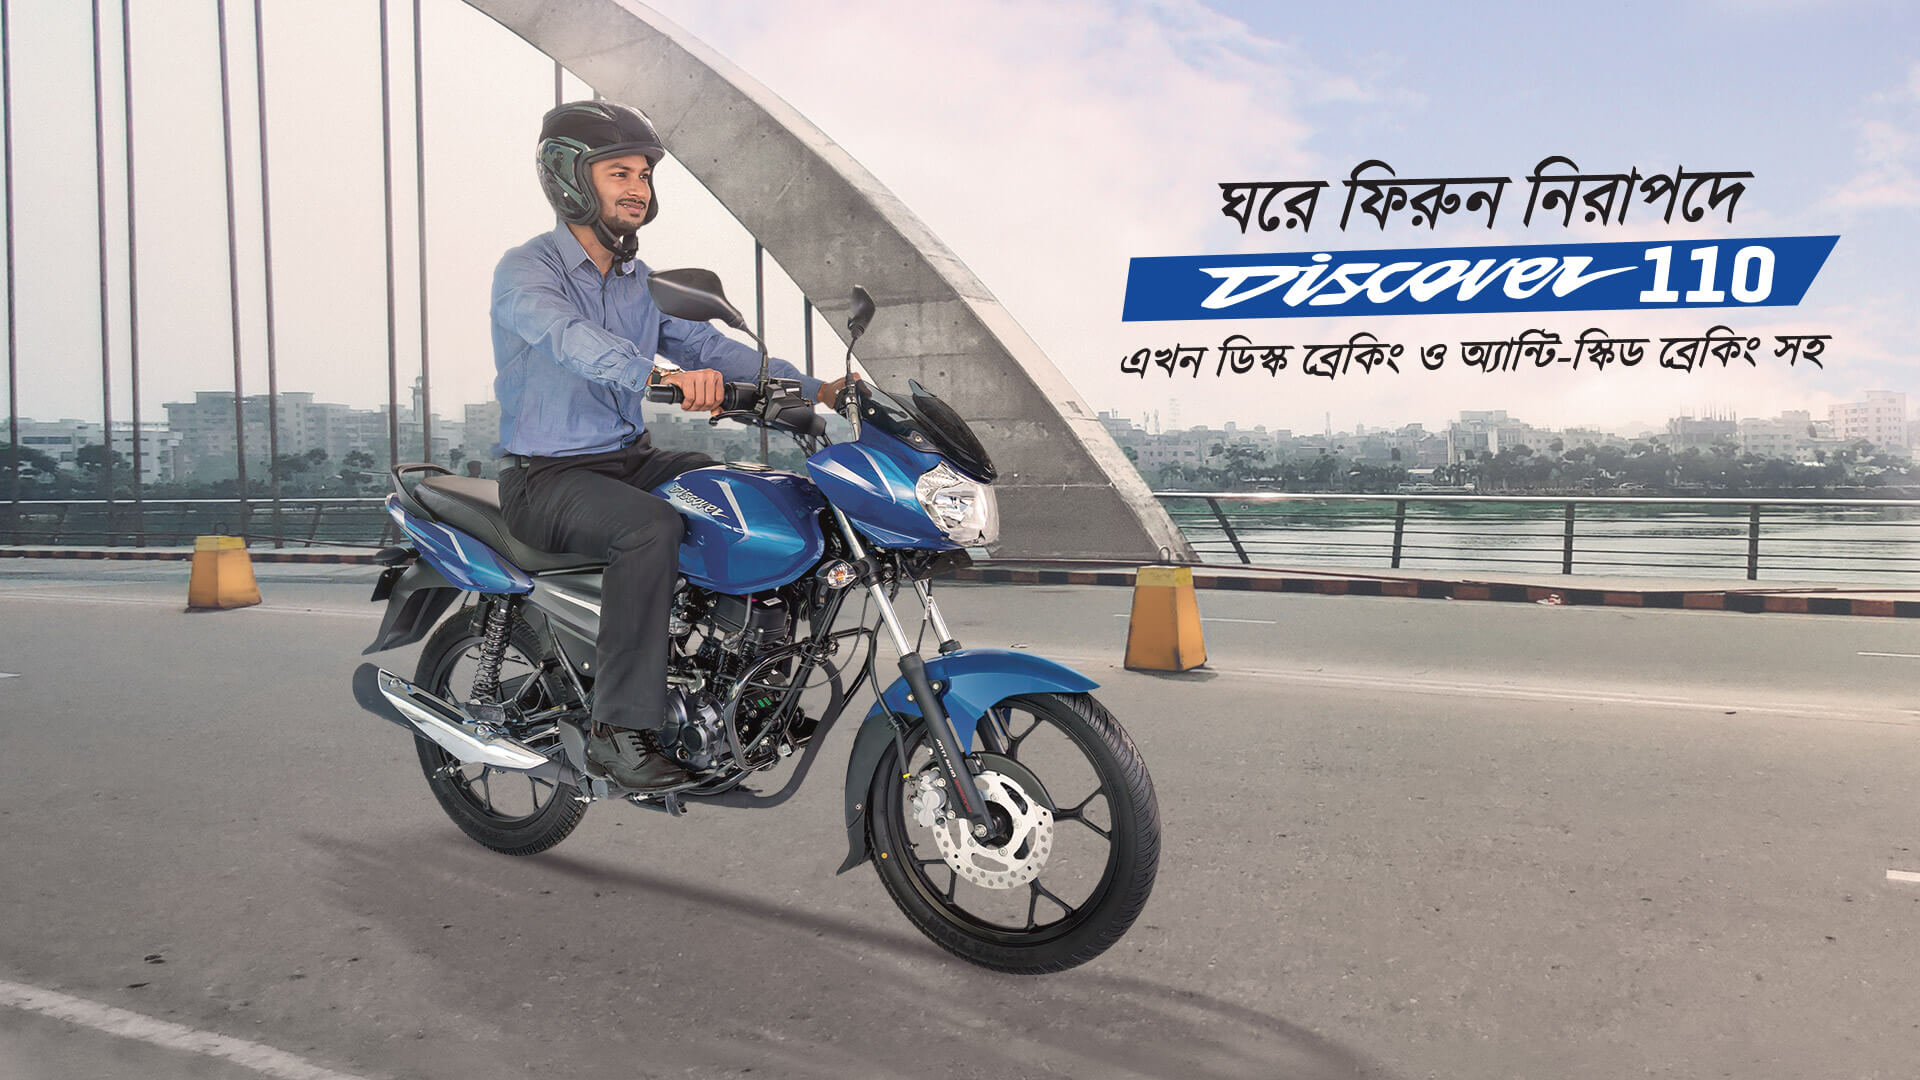 Bajaj Discover 110 Disc Introduction